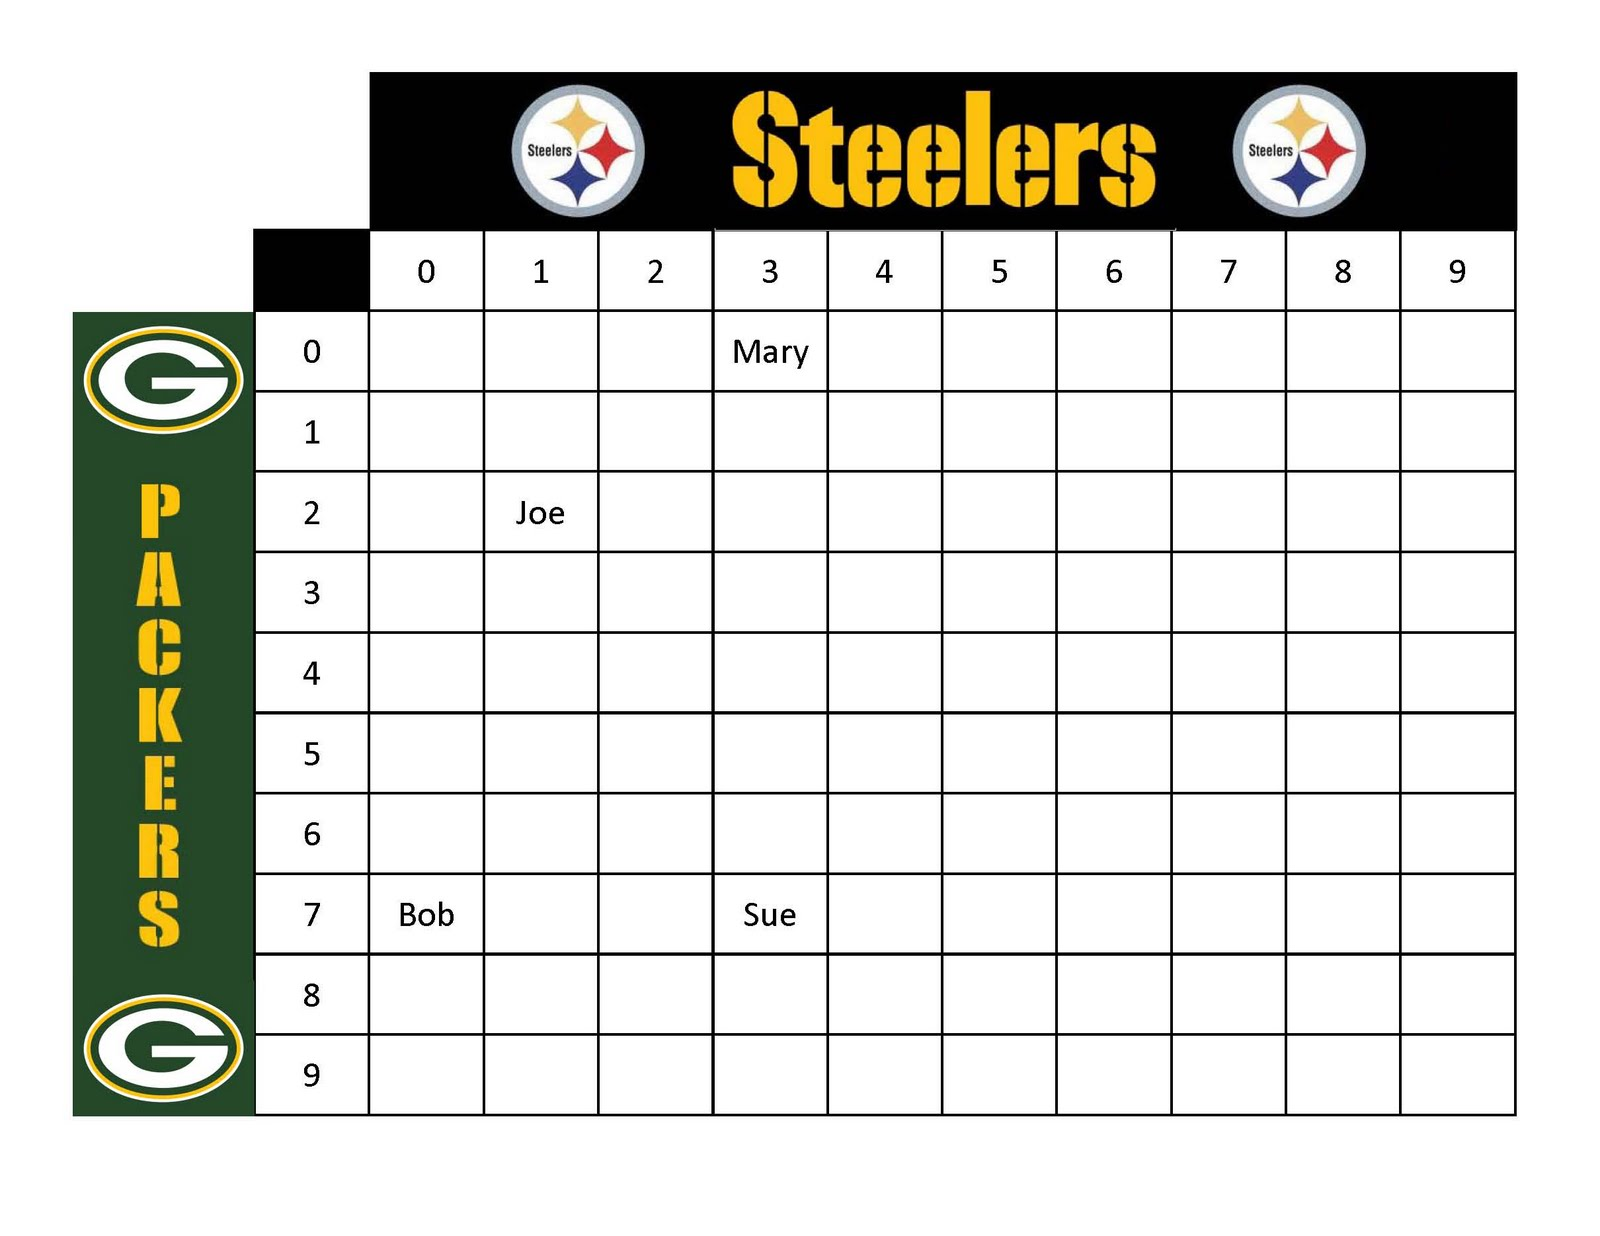 Super Bowl Football Pool Sheets Printable | Search Results | Calendar ...